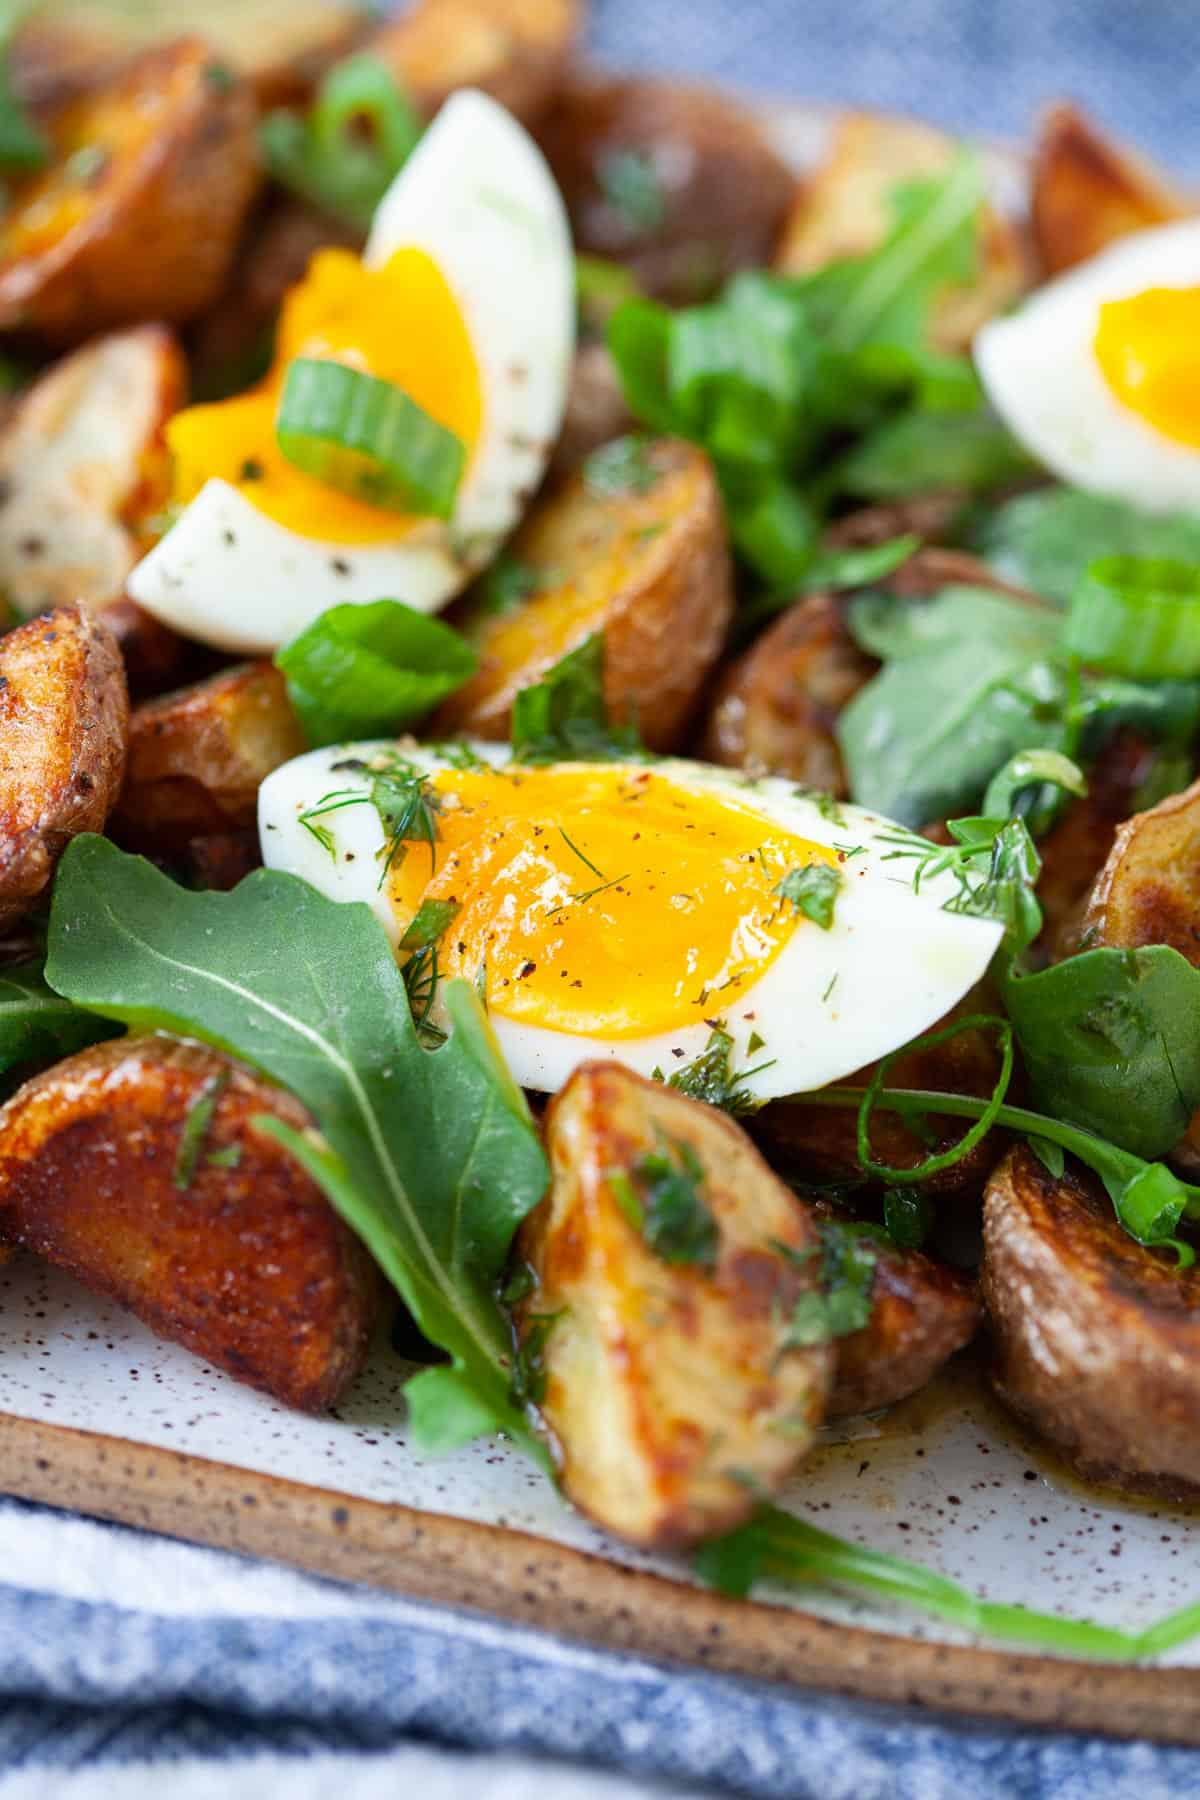 soft boiled eggs, arugula, and scallions mixed with roasted potatoes